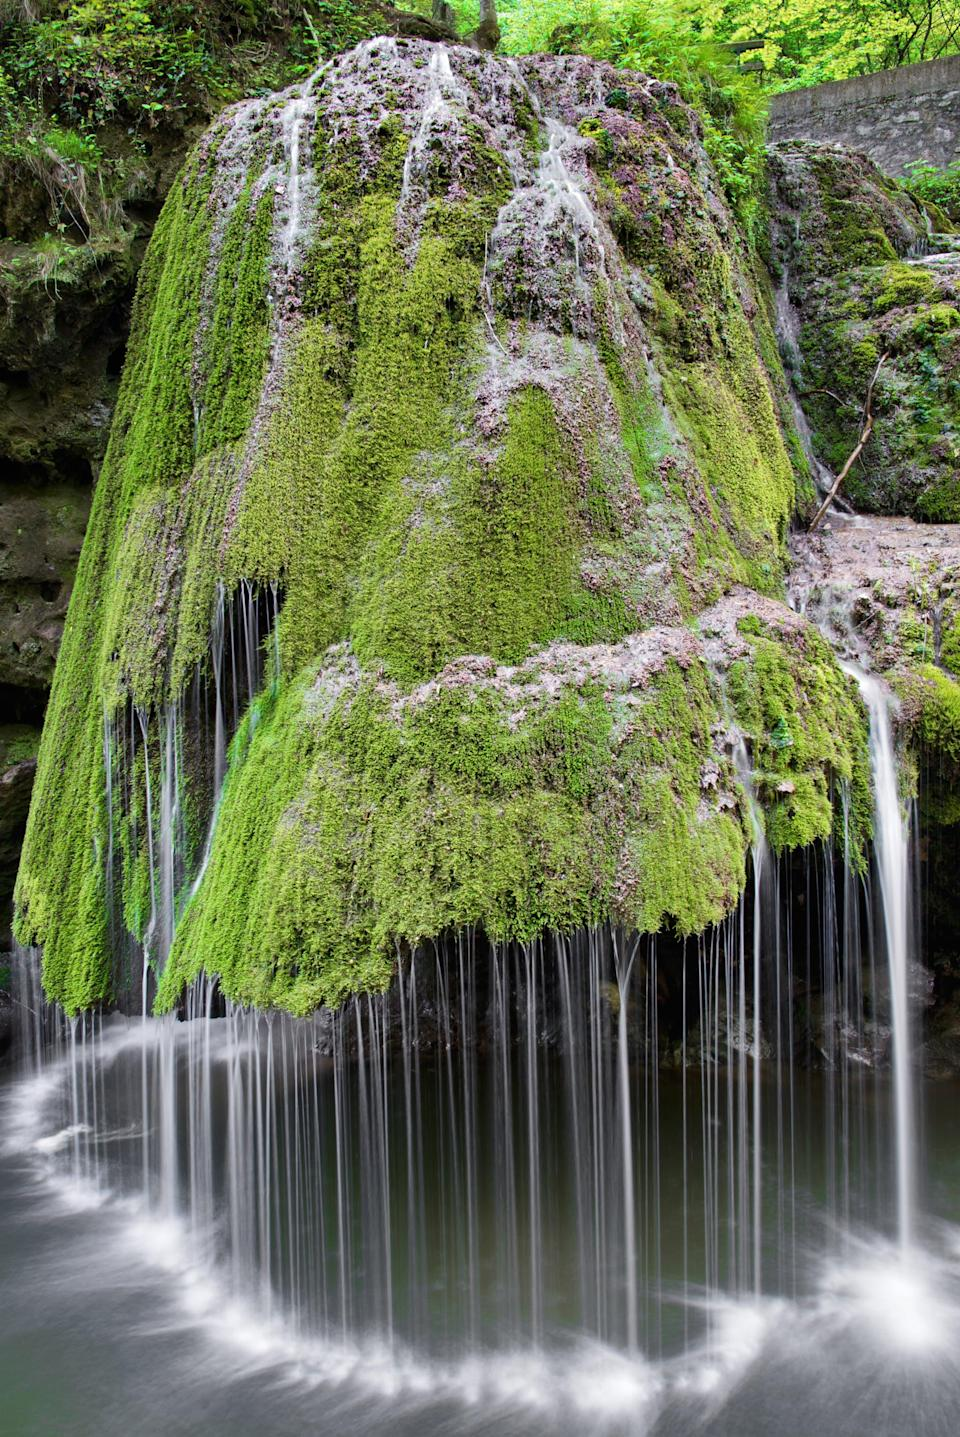 <p>One look at this waterfall and you'll see why traveling to it is a must. The stream falls from a cliff onto the moss, which makes the water fall in the interesting patterns you see. </p>